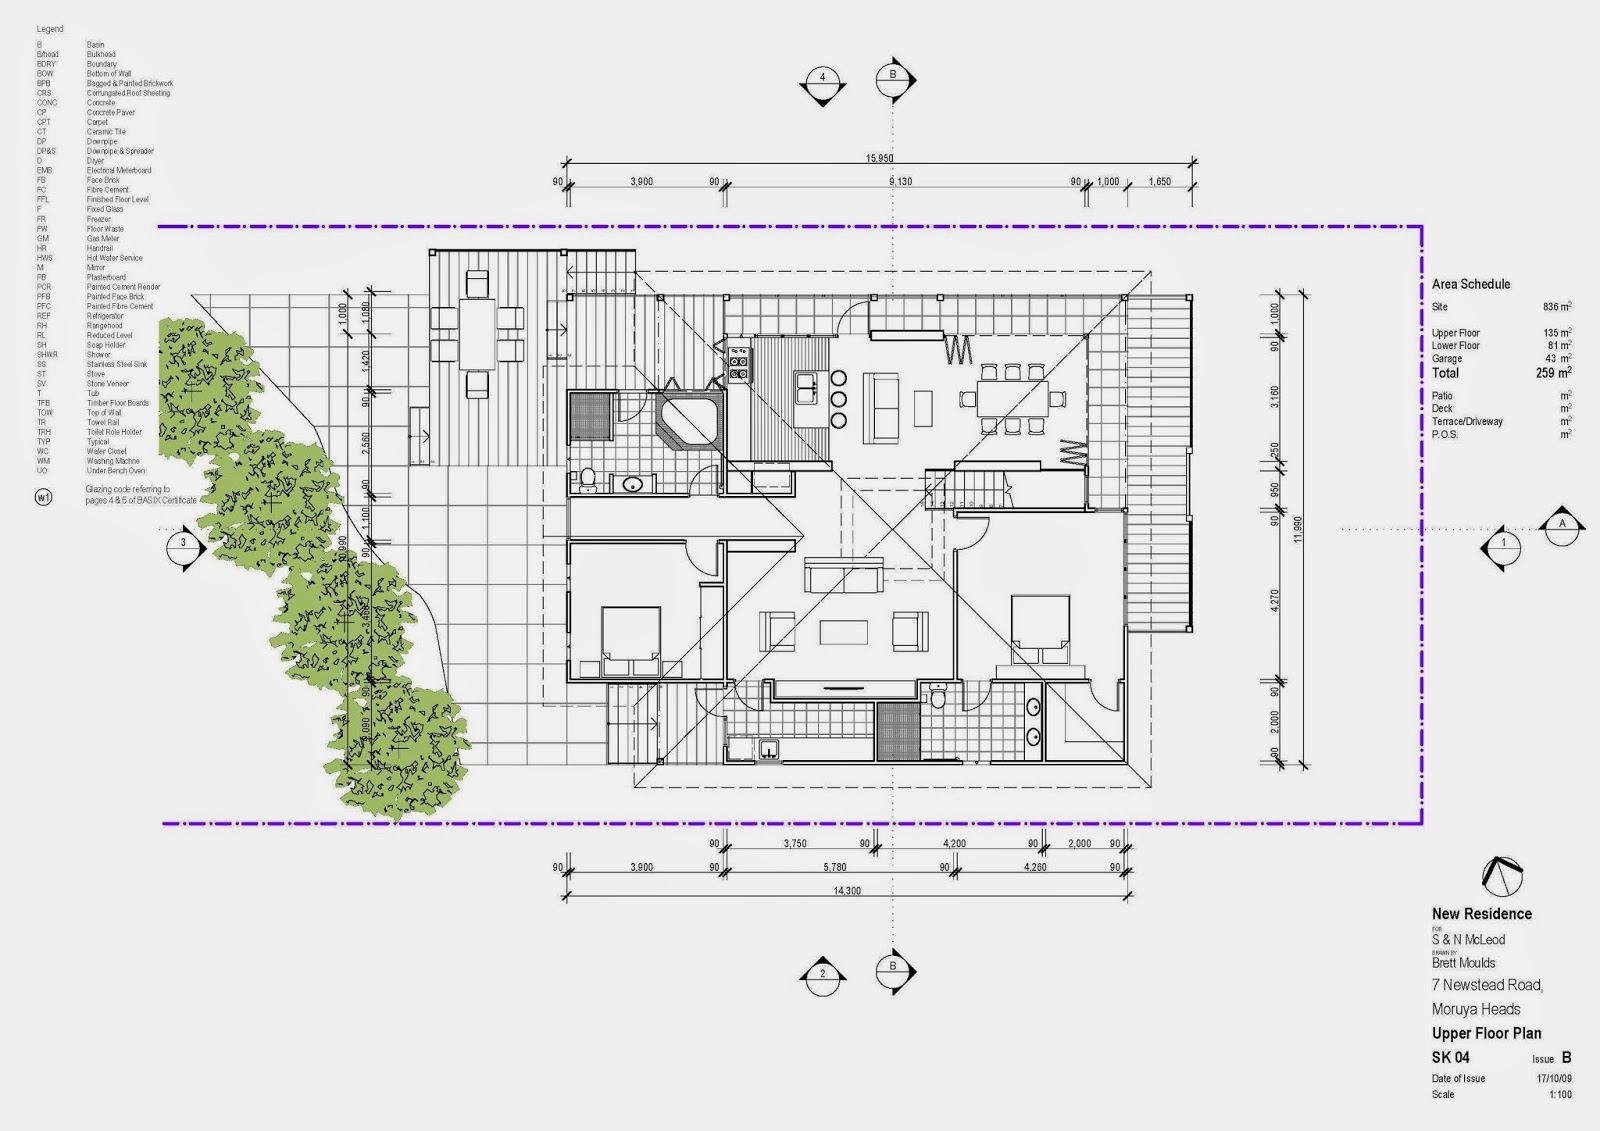 Architectural Floor Plan : Architectural Floor Plan